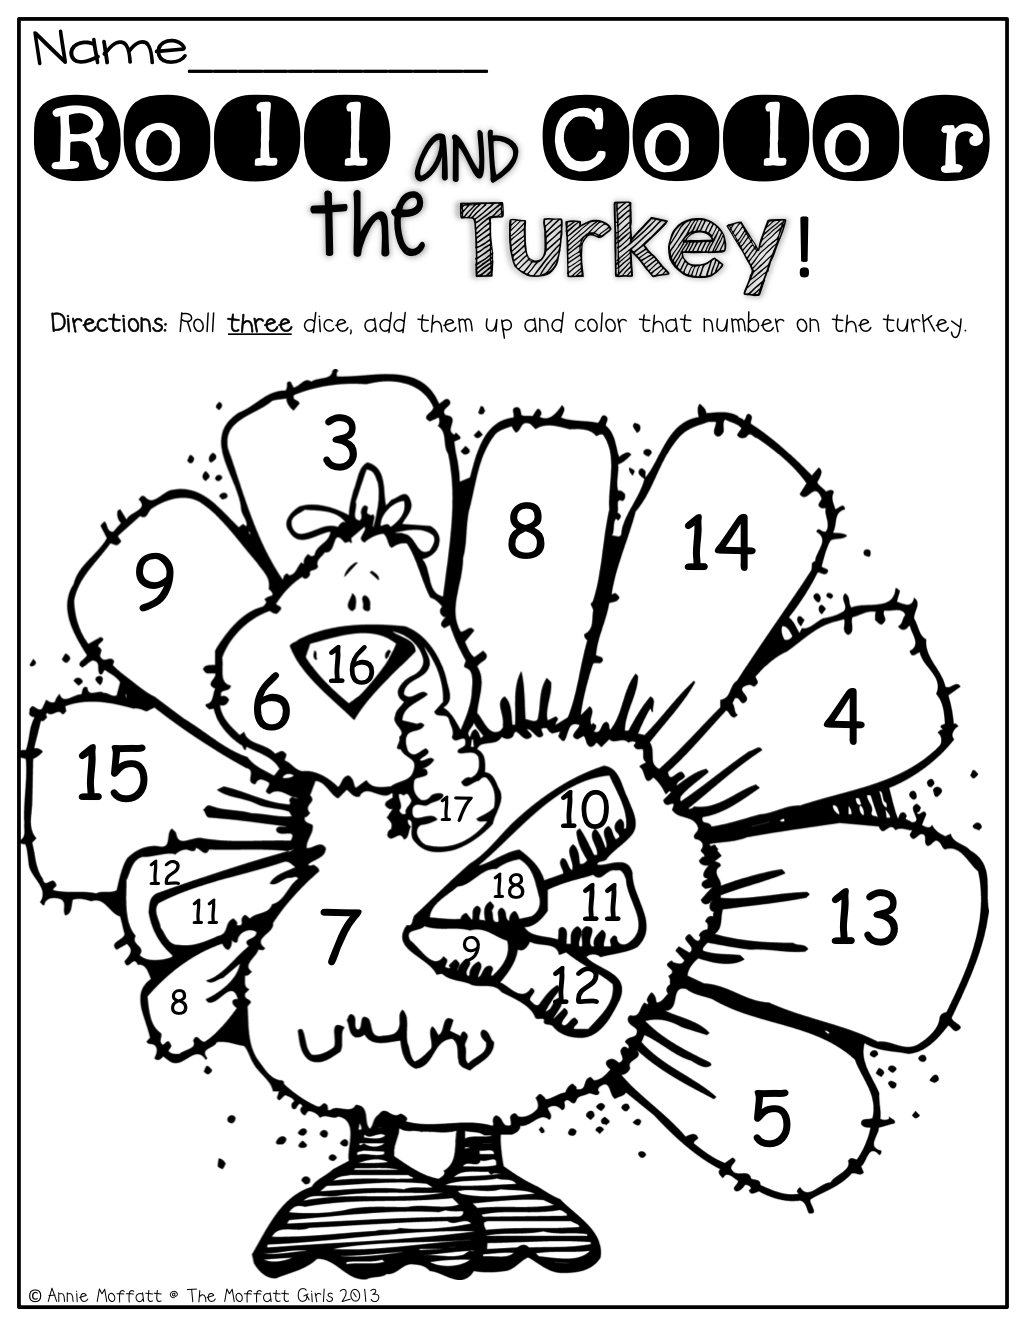 Roll 2 Dice Add Them Up And Color The Turkey